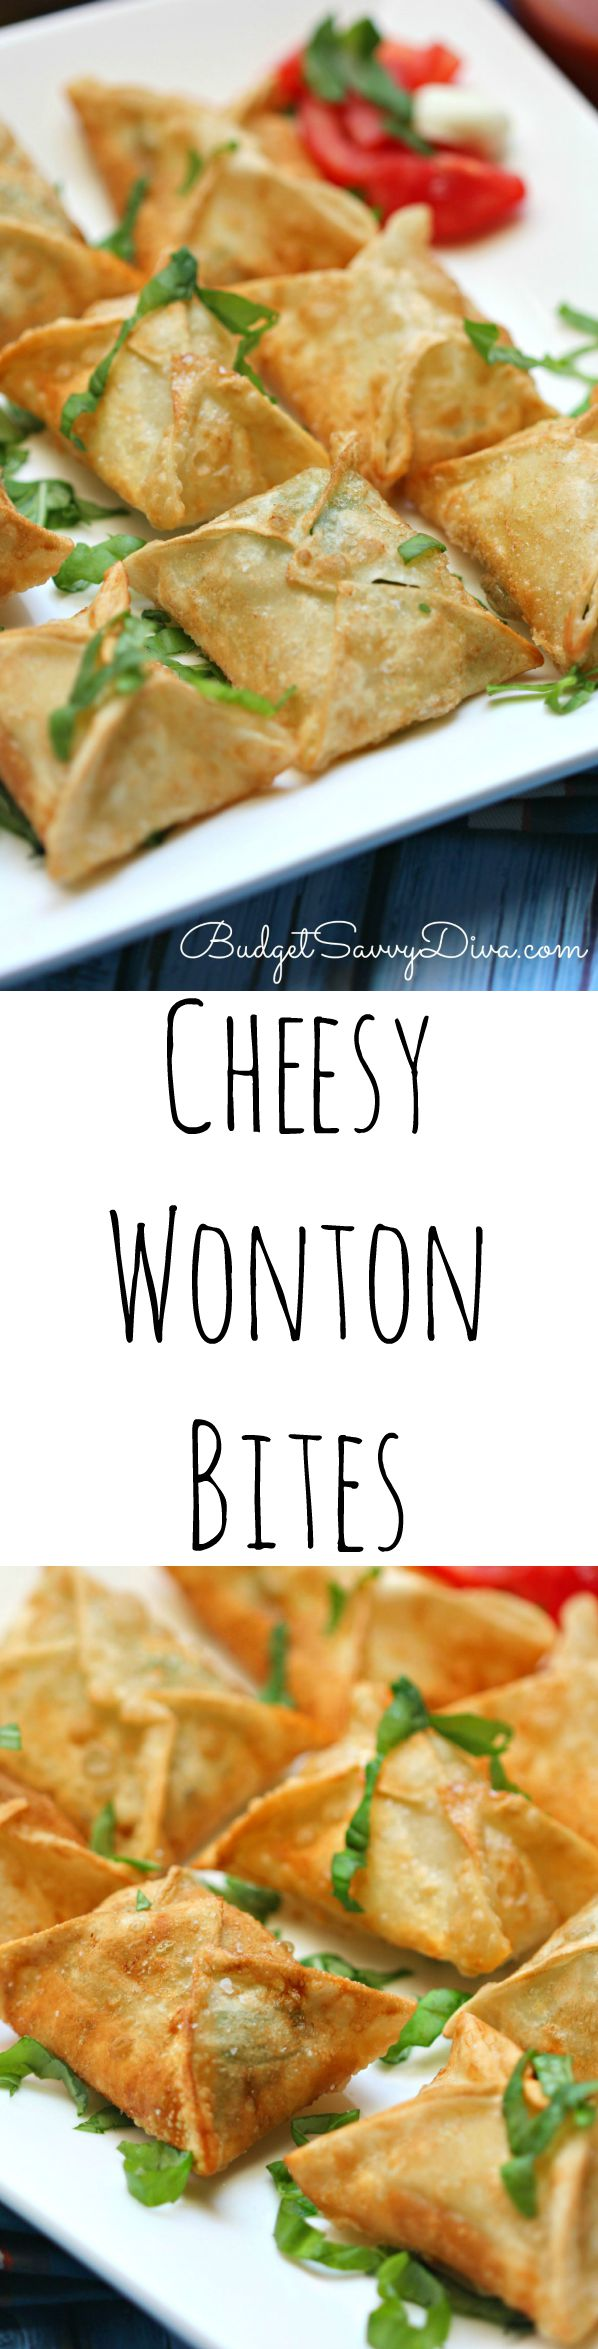 cheesy wonton bites FINAL